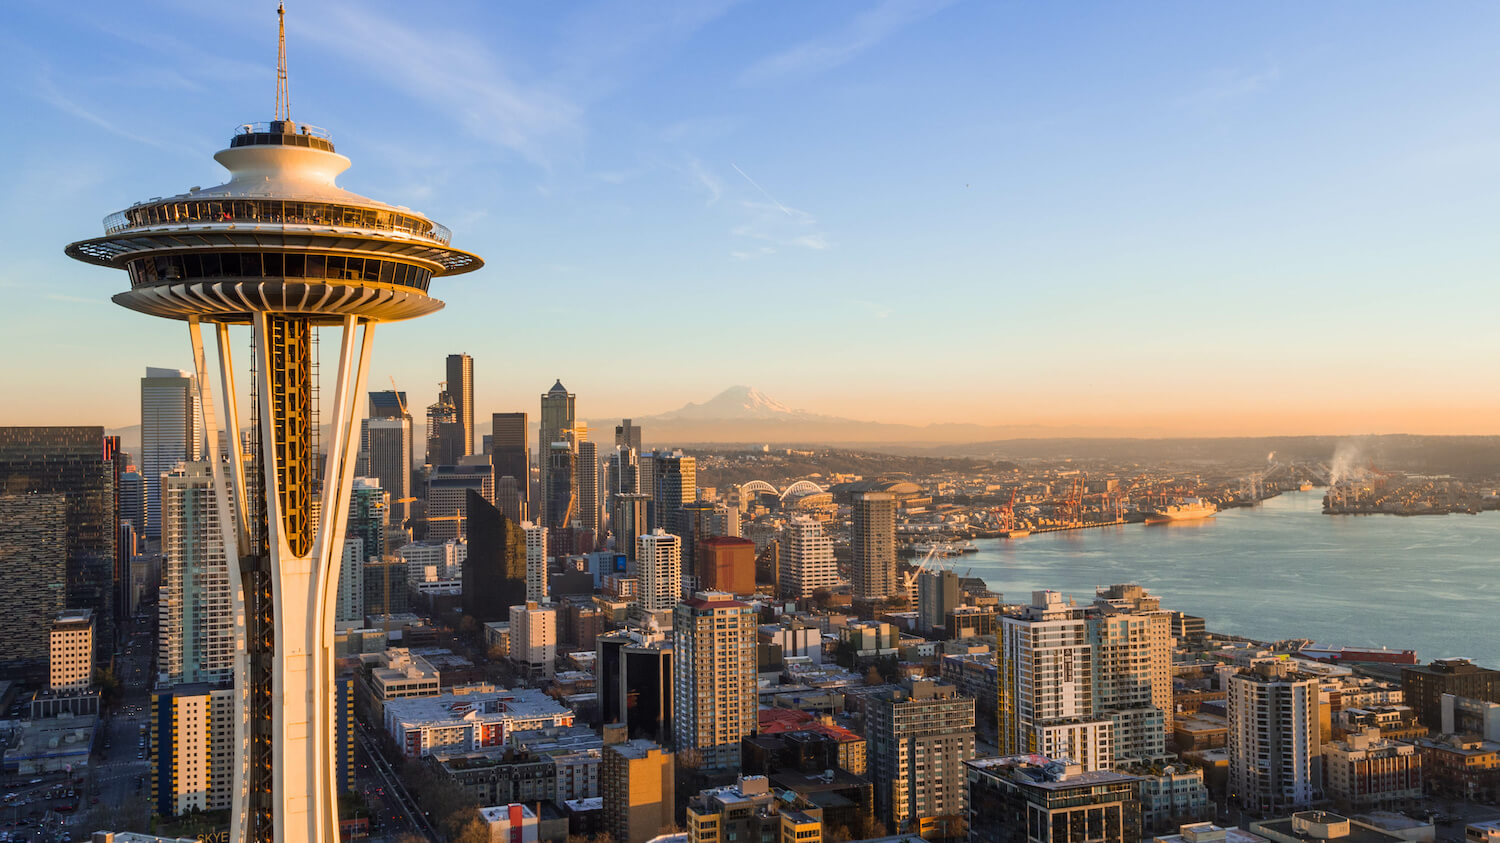 Skyline of Seattle Washington from the point of view of the Space Needle, which is in the foreground of this shot. The many buildings of the Seattle skyline crowd around Elliott Bay with the faint outline of Mt. Rainier on the peach colored horizon.